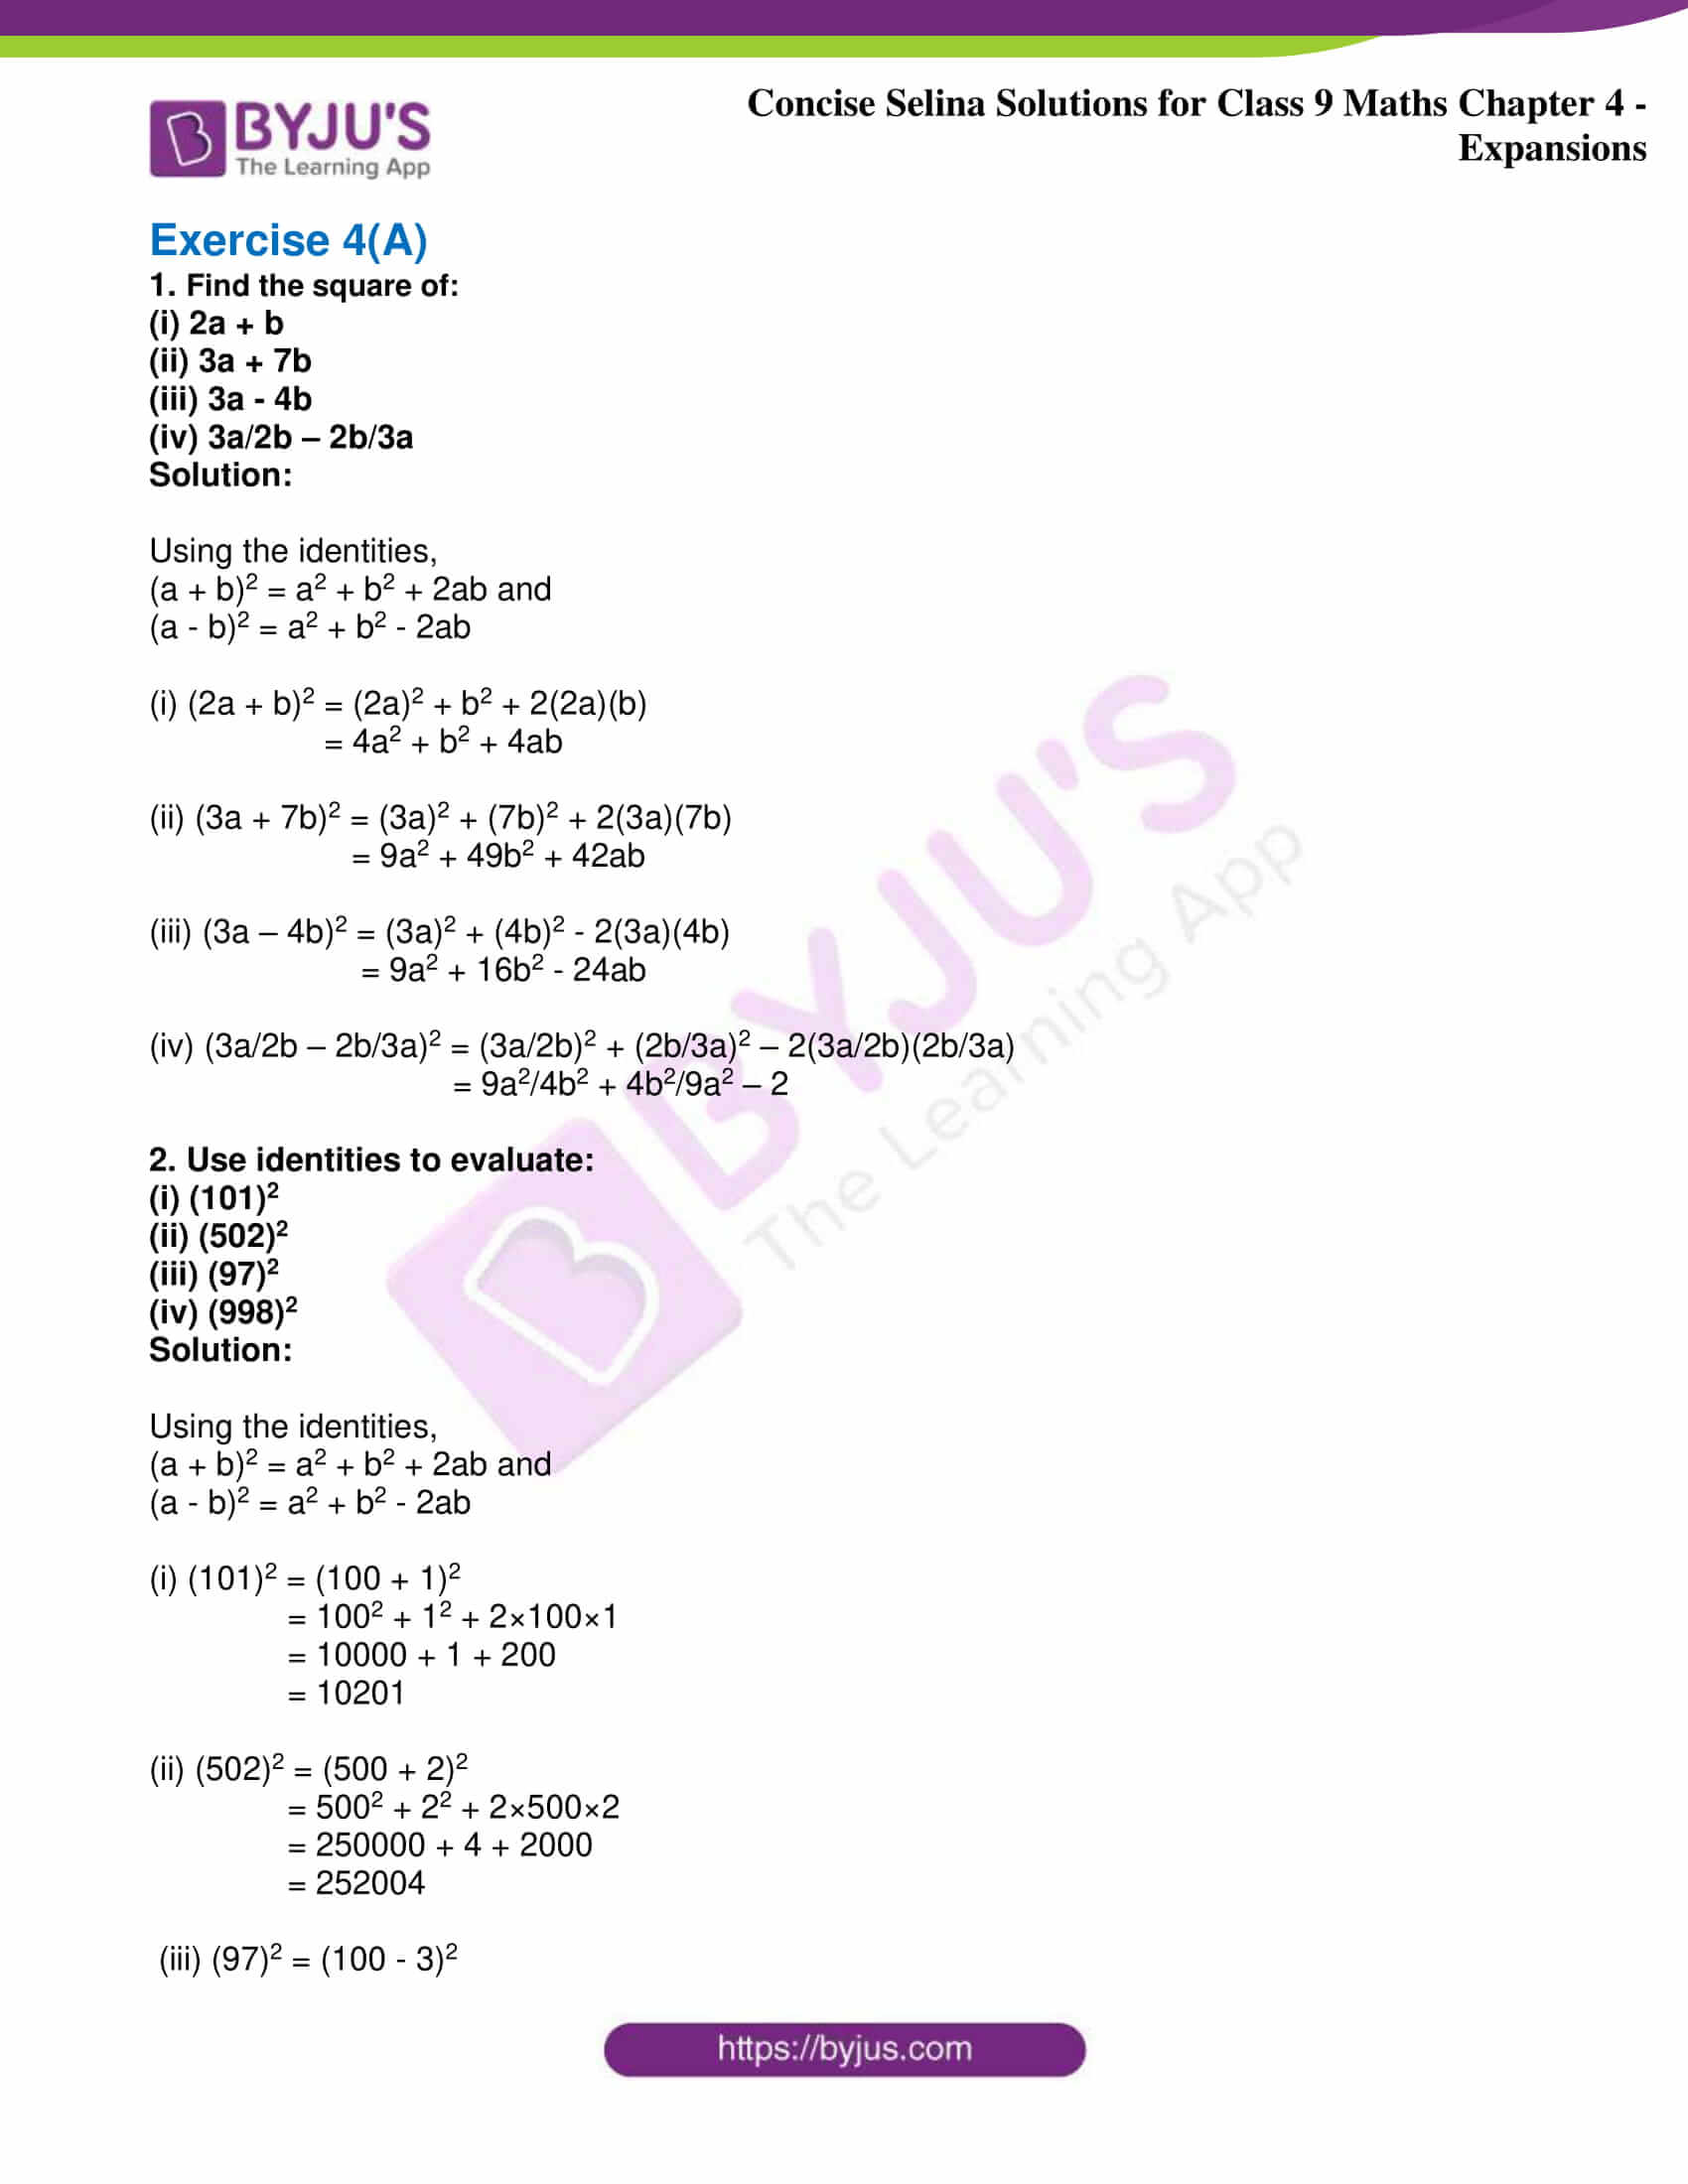 icse class 9 maths may10 selina solutions chapter 4 expansions 01